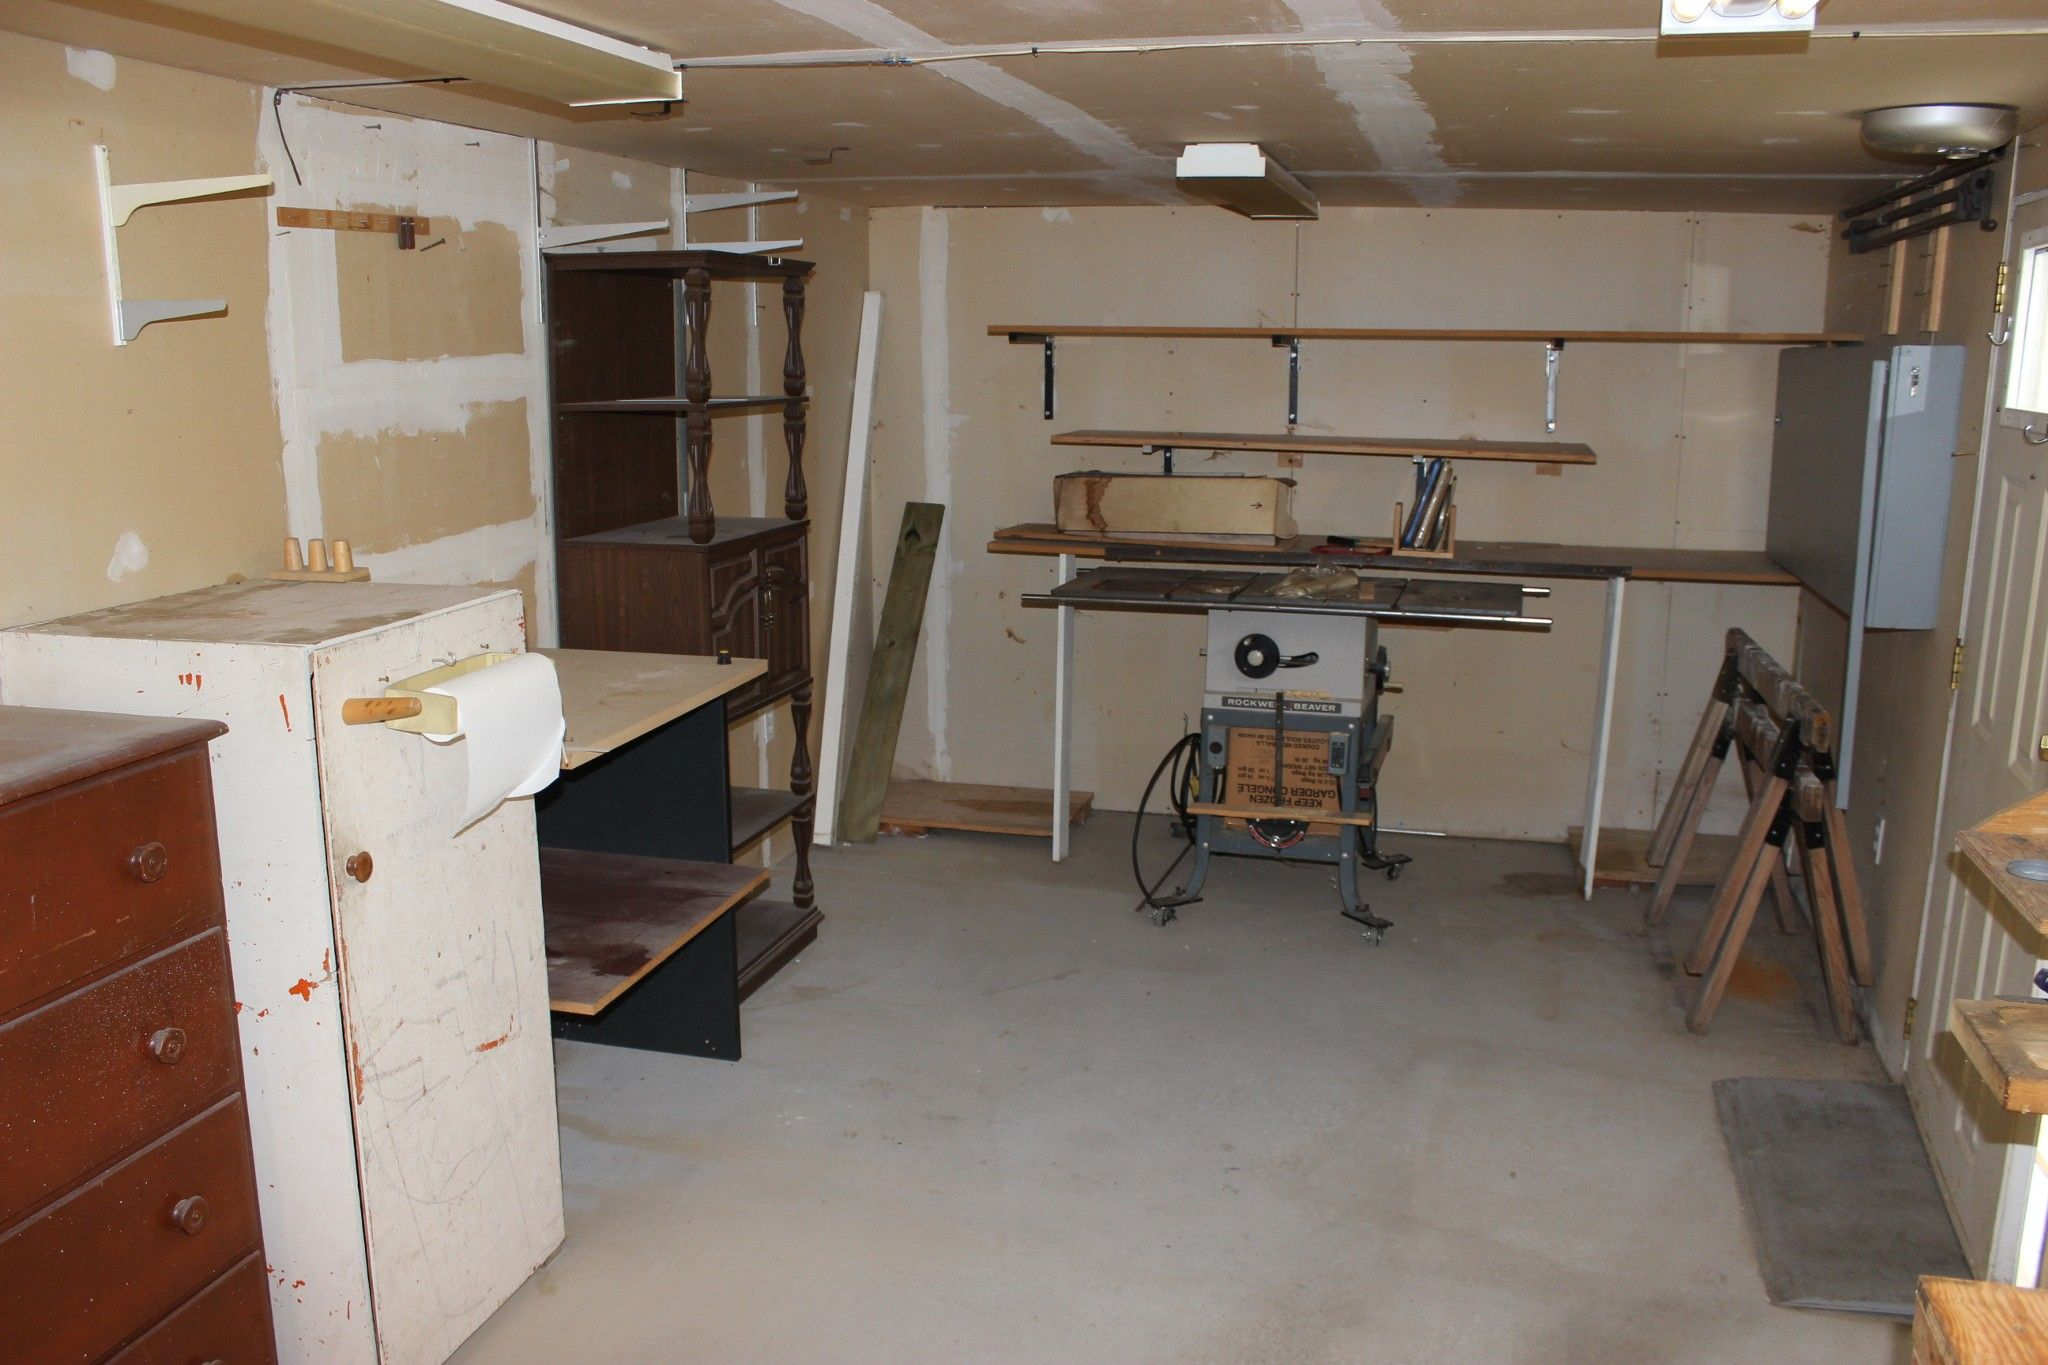 Photo 18: Photos: 22 3099 E Shuswap Road in Kamloops: South Thompson Valley Manufactured Home for sale : MLS®# 147827